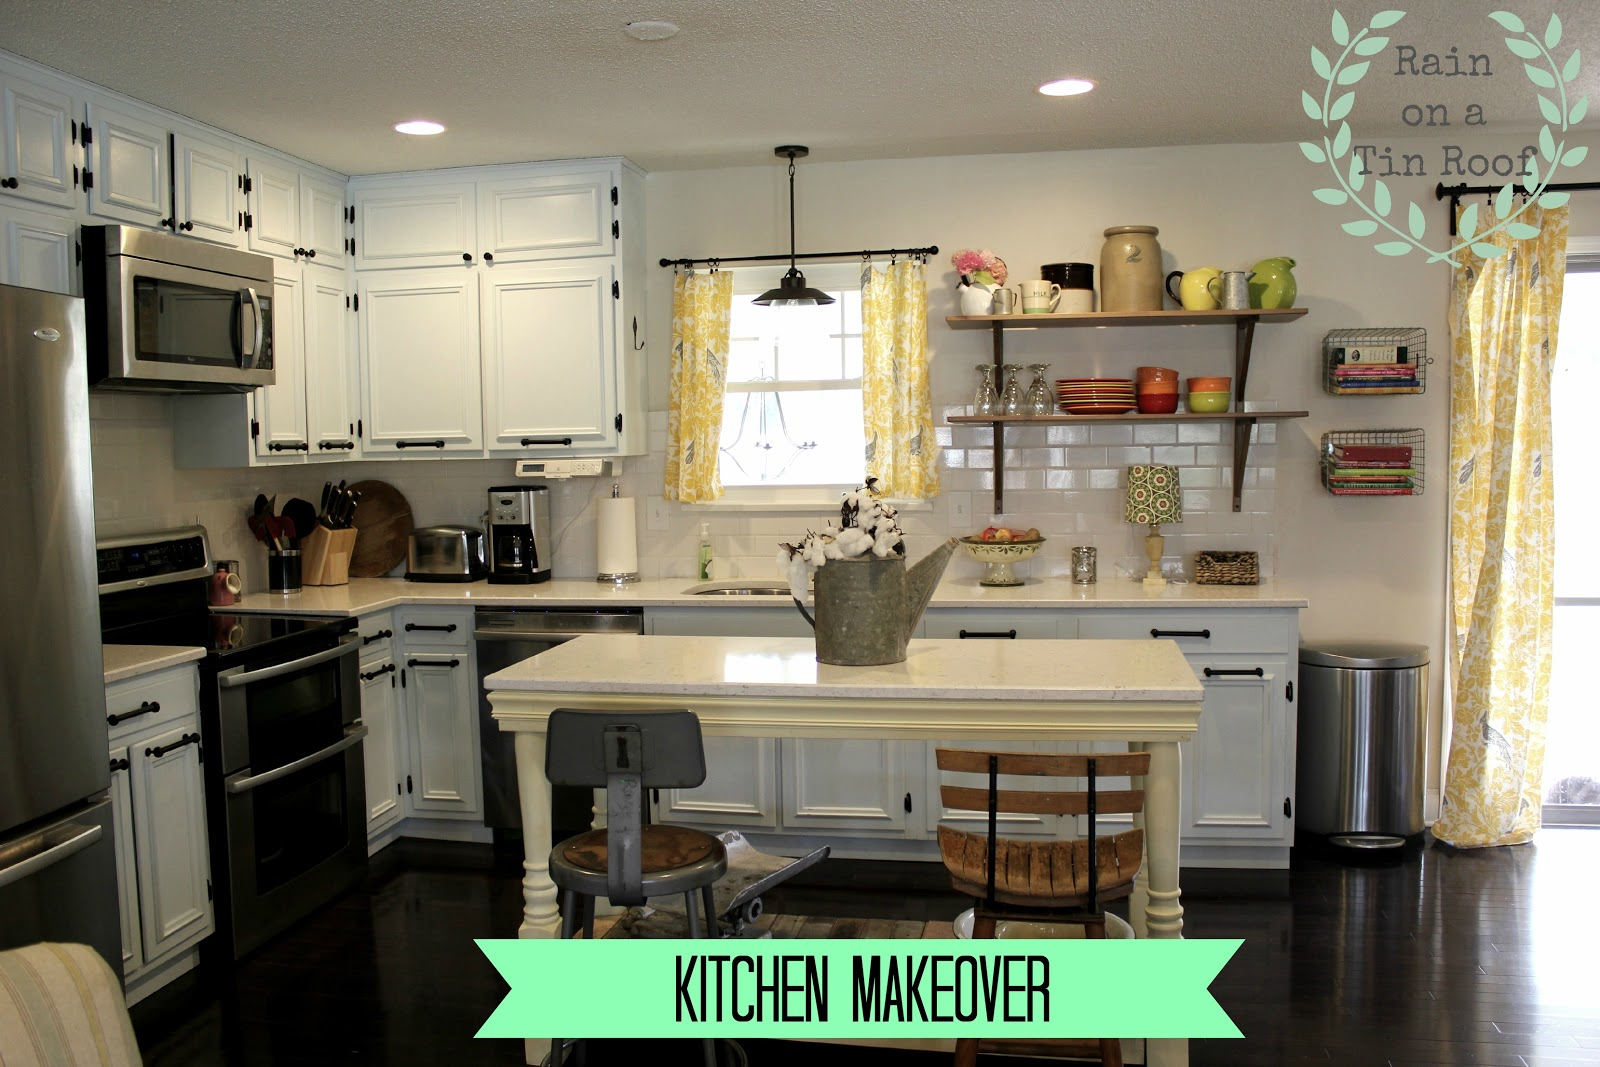 Attractive Kitchen Makeover {rainonatinroof.com} #kitchen #makeover #re Model # Great Ideas